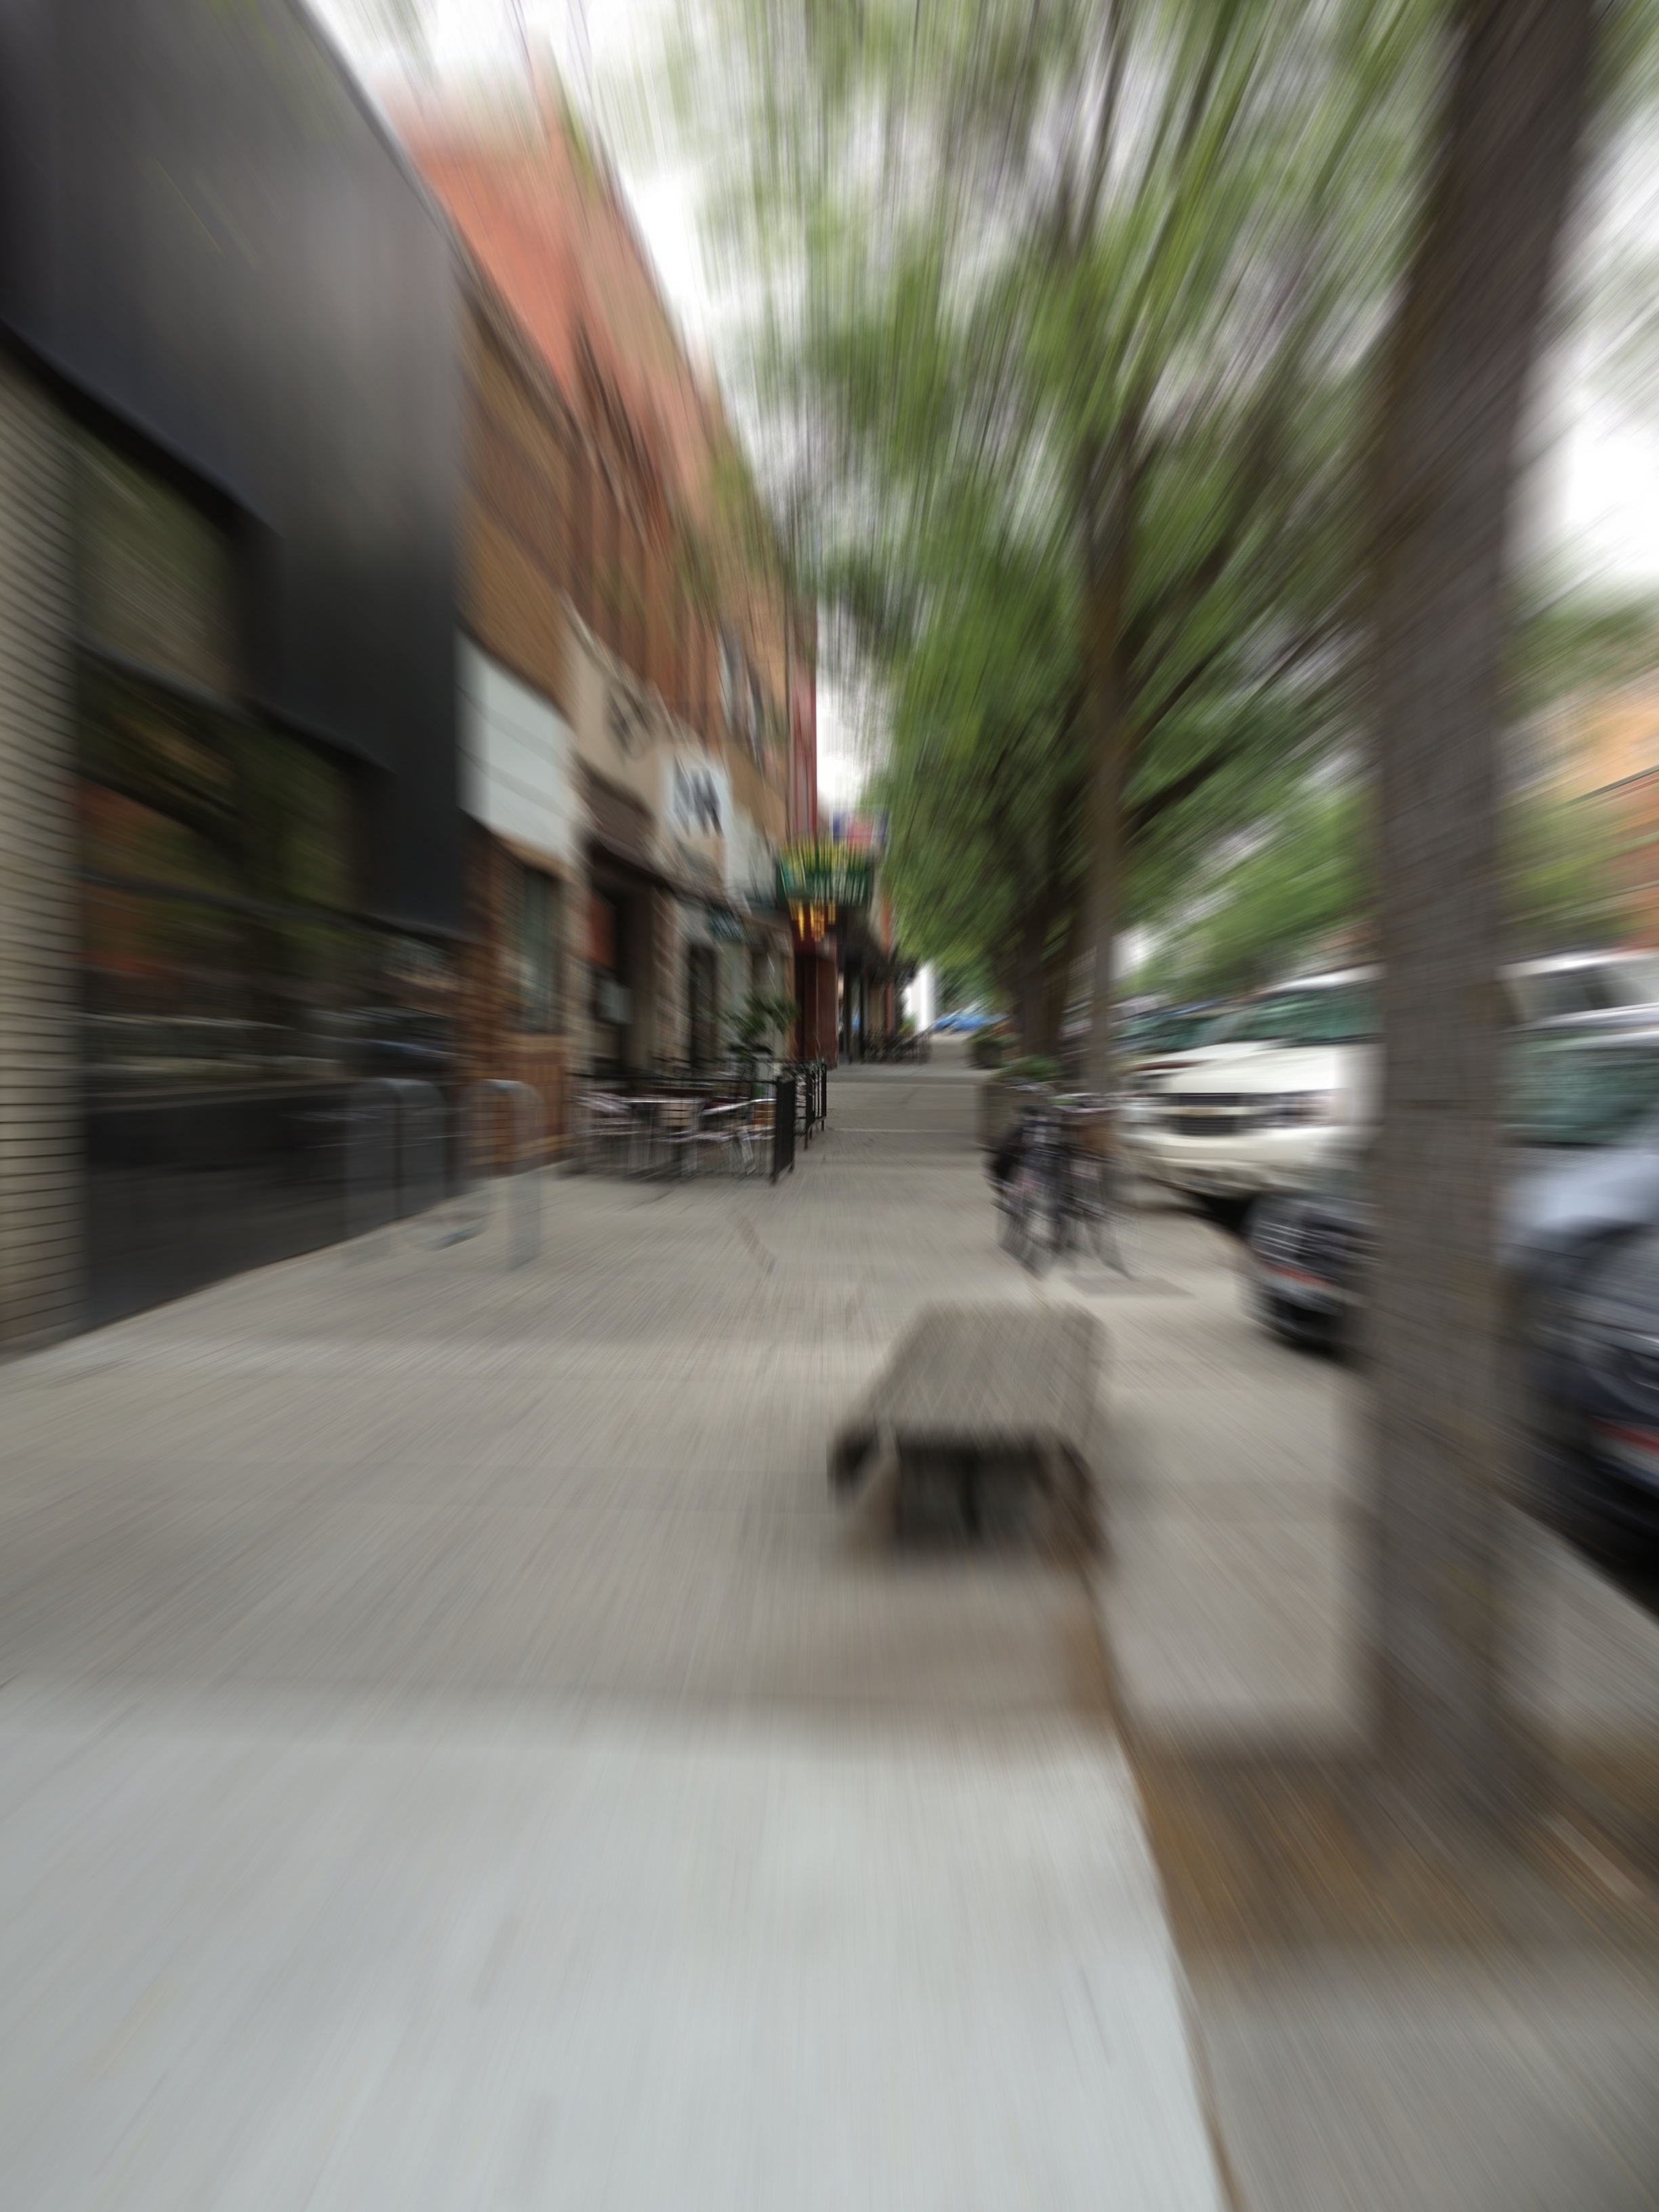 Same street scene, out of focus. A photo effect makes it look as if the scene is flickering or streaked toward the center of the picture.